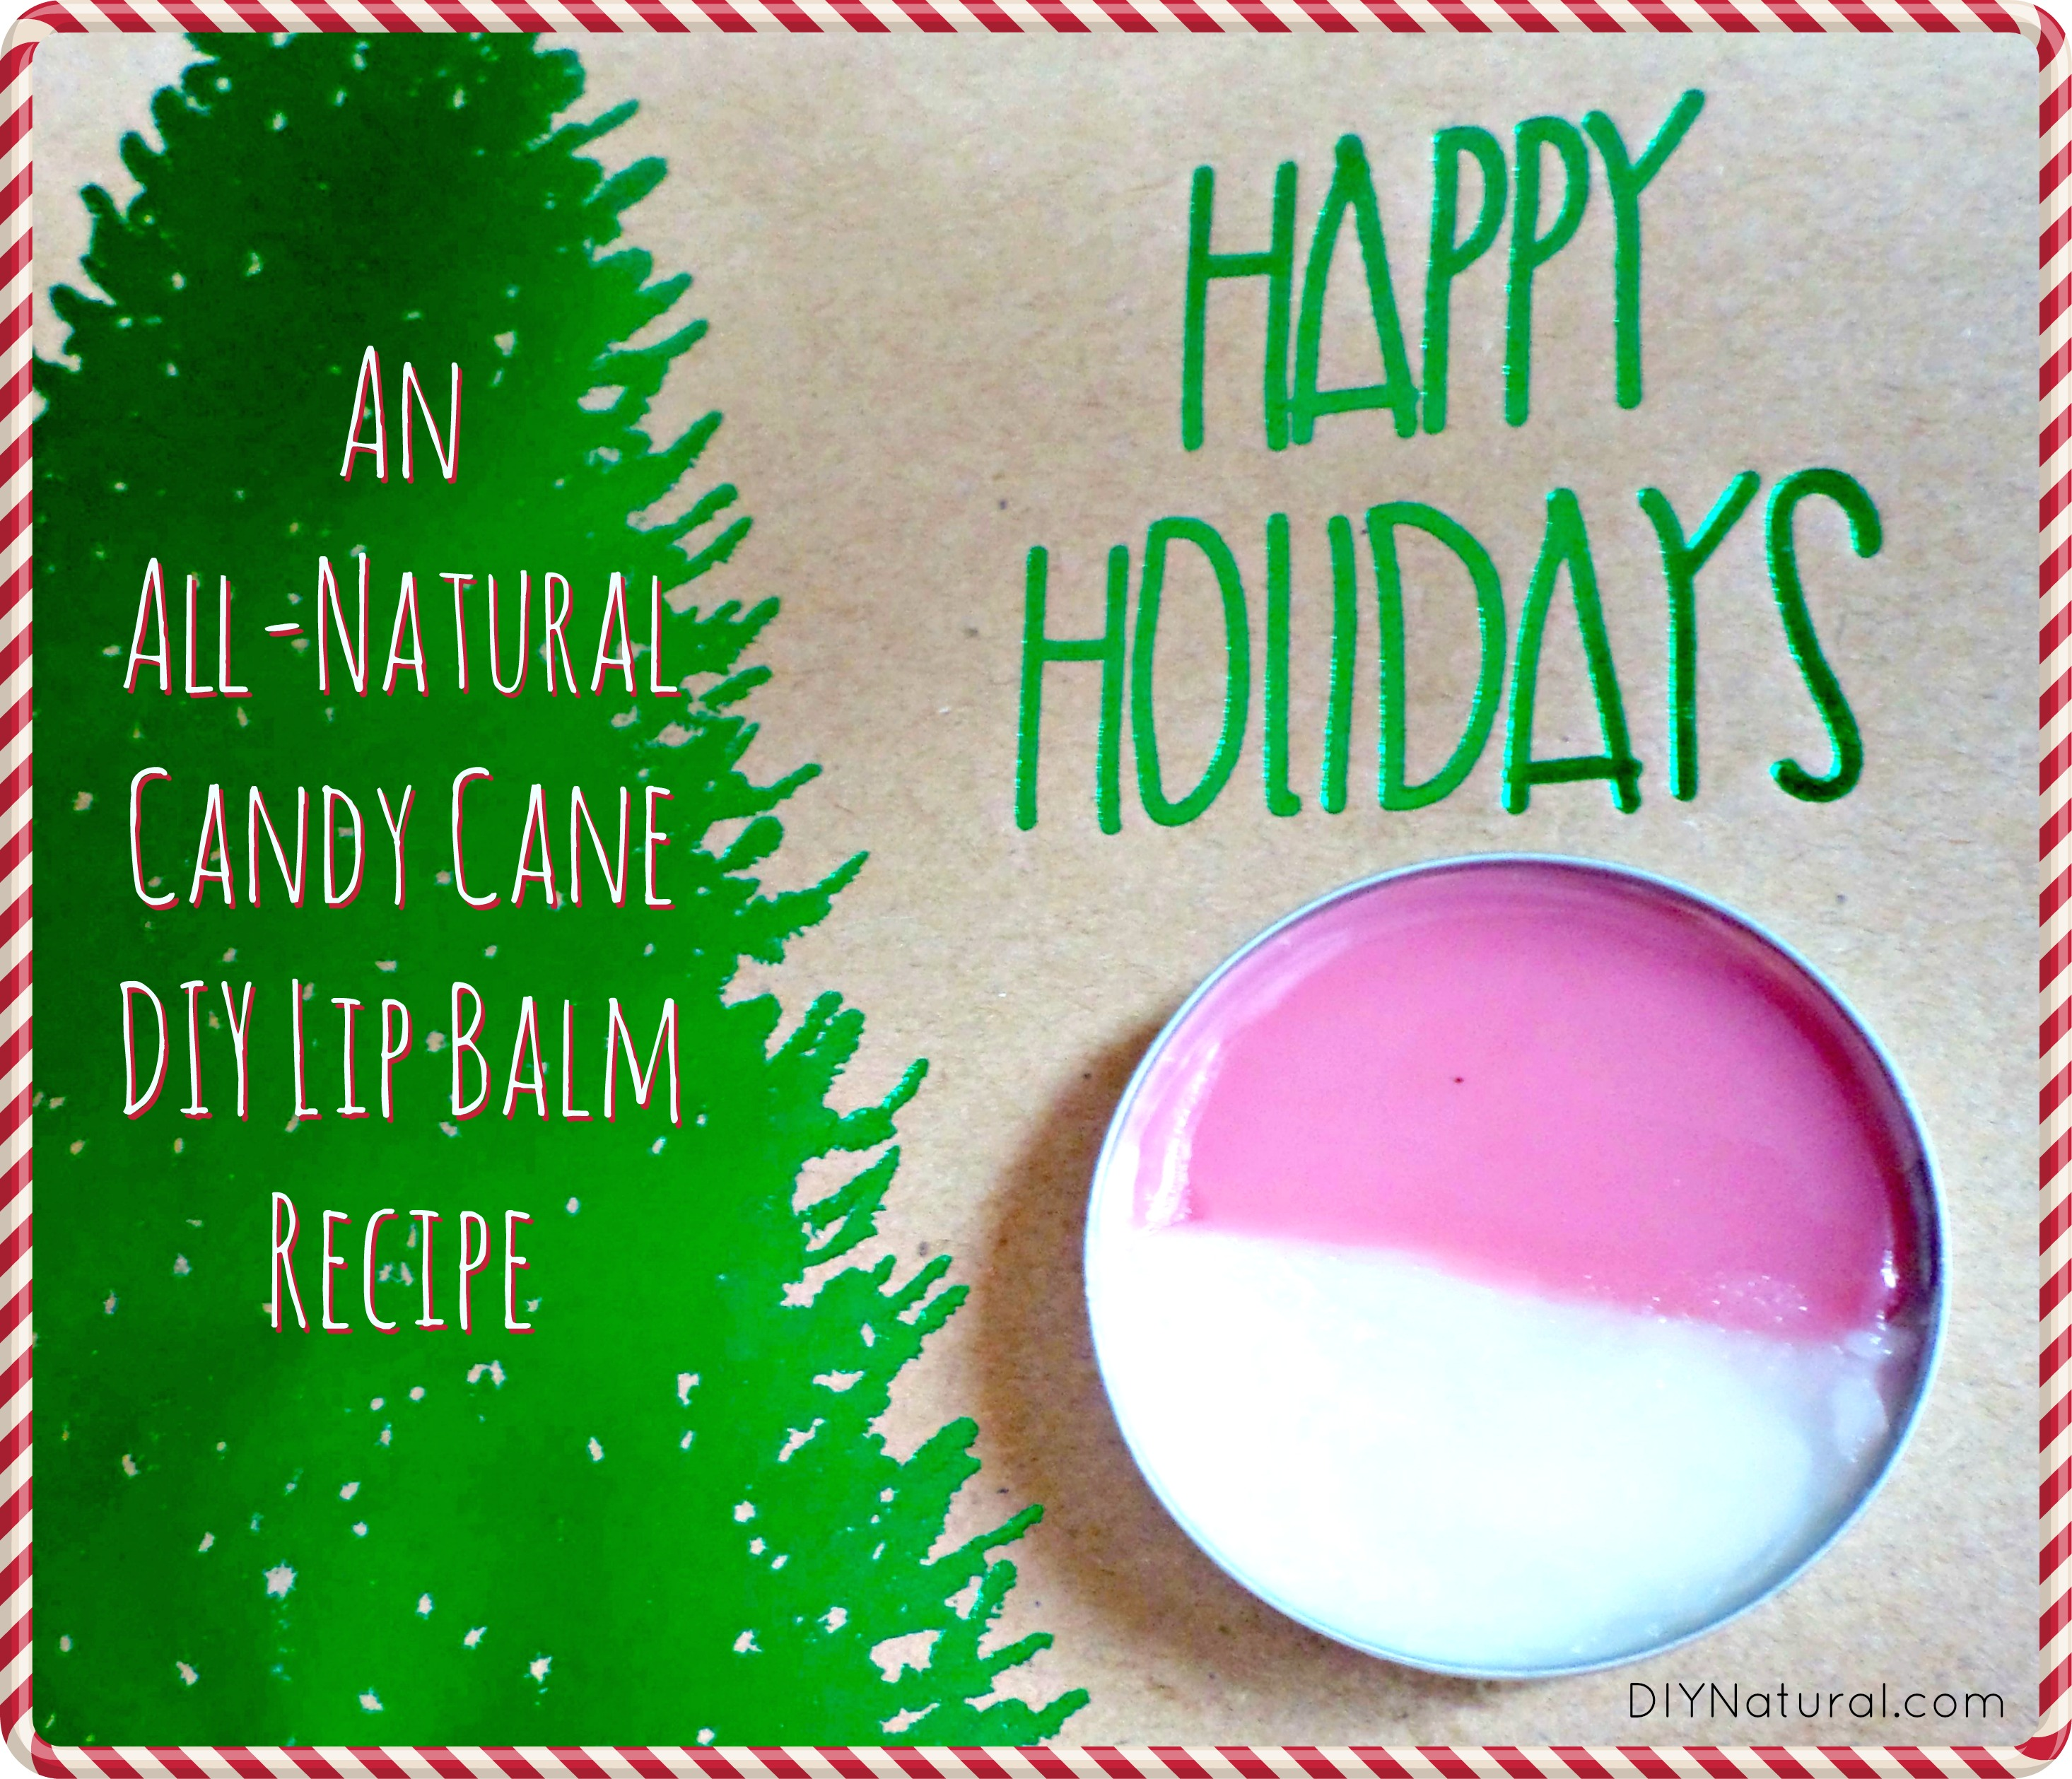 Diy Lip Balm Flavors Peppermint Lip Balm Recipe A Natural Candy Cane Look And Flavor